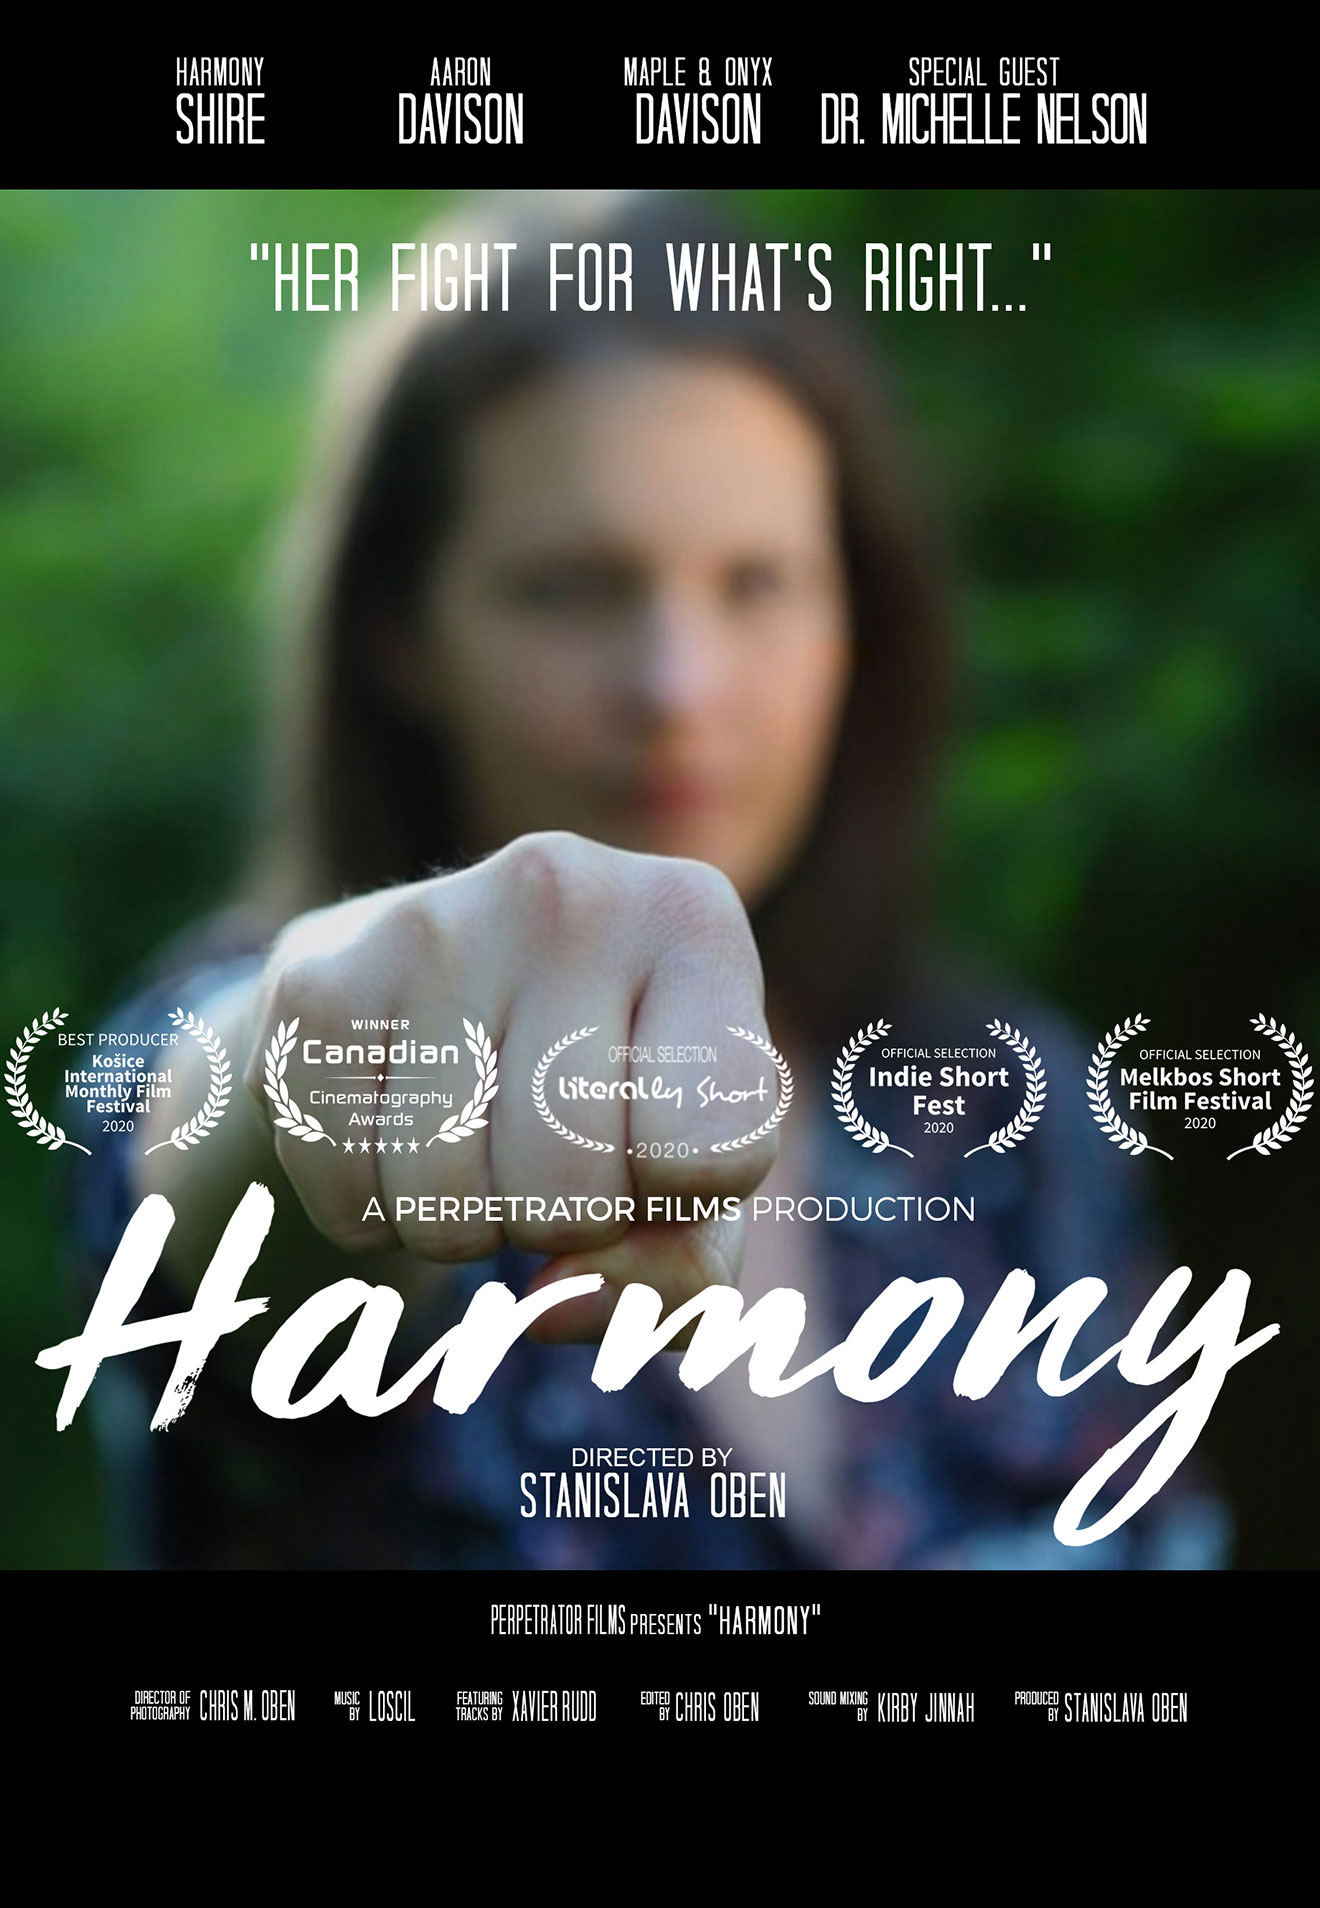 """poster photo of a closed fist of a woman facing us in the foreground, face of the woman blurry in the background acts as a link to the film page """"Harmony"""" on The Green Channel."""